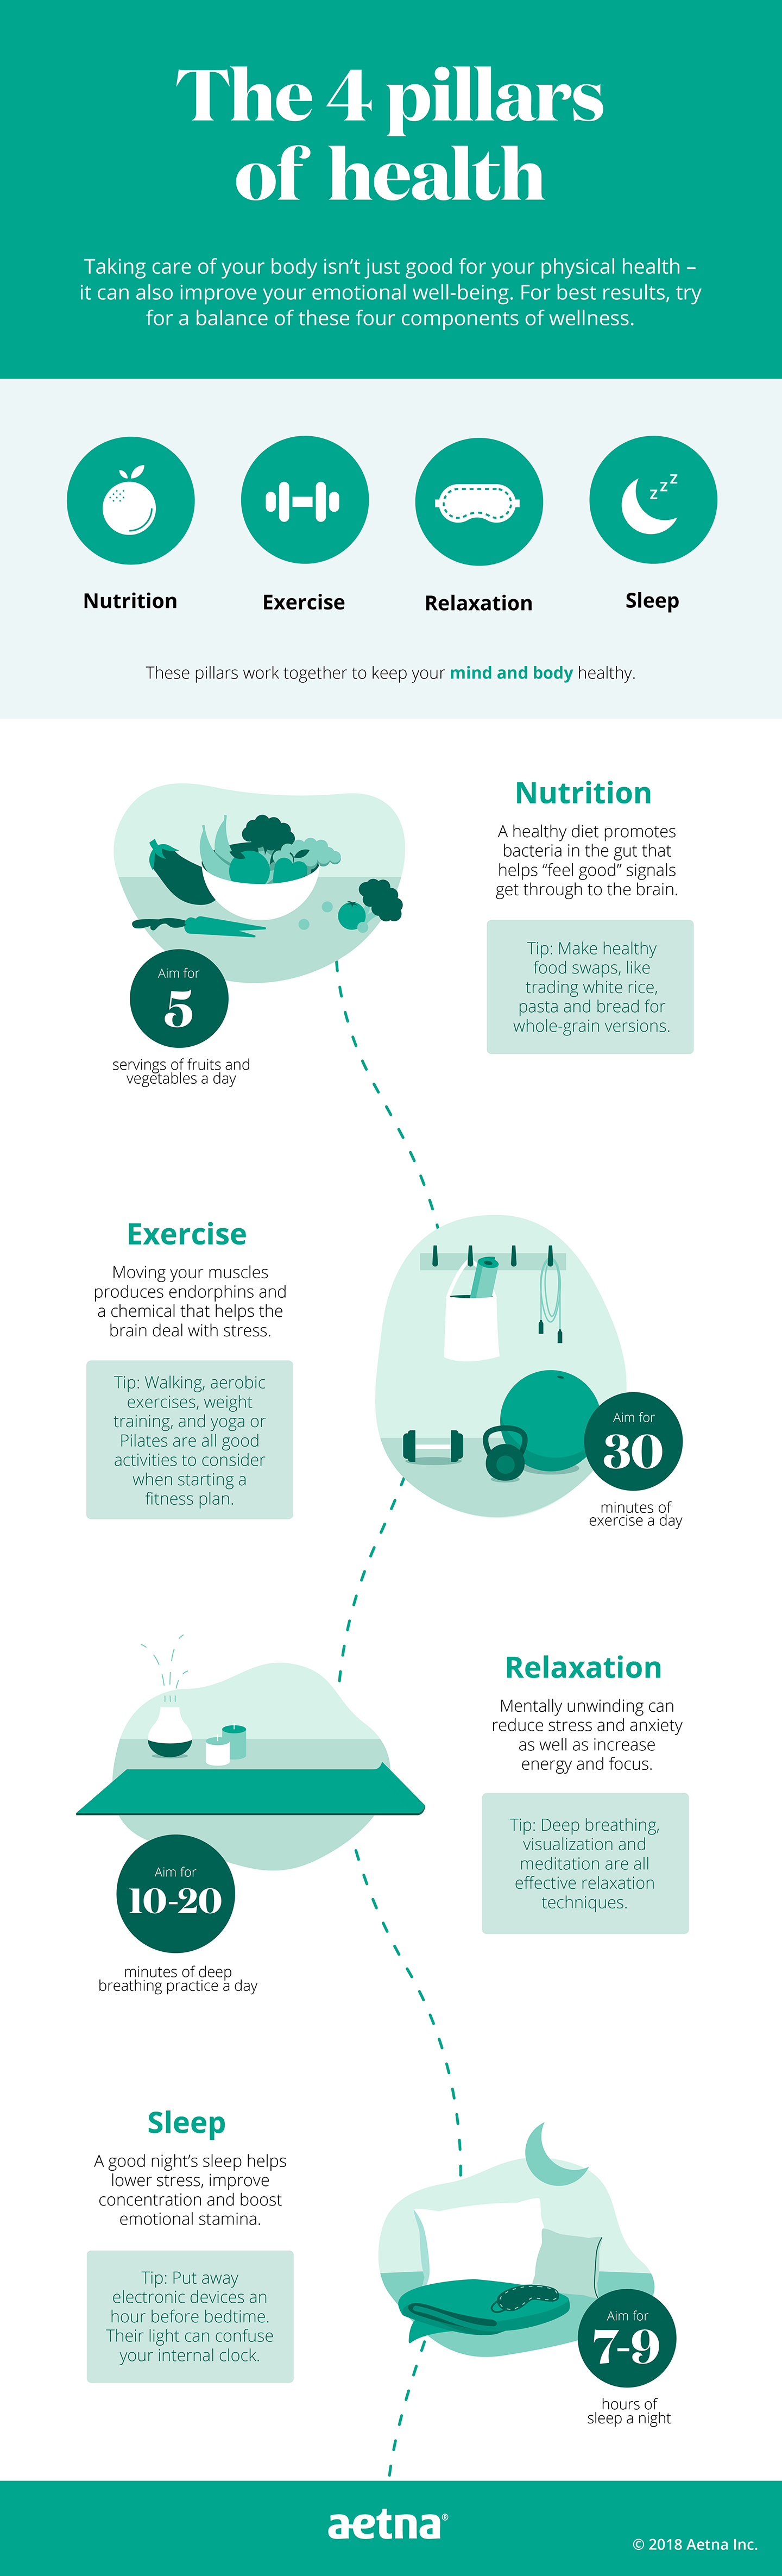 4 pillars of health infographic